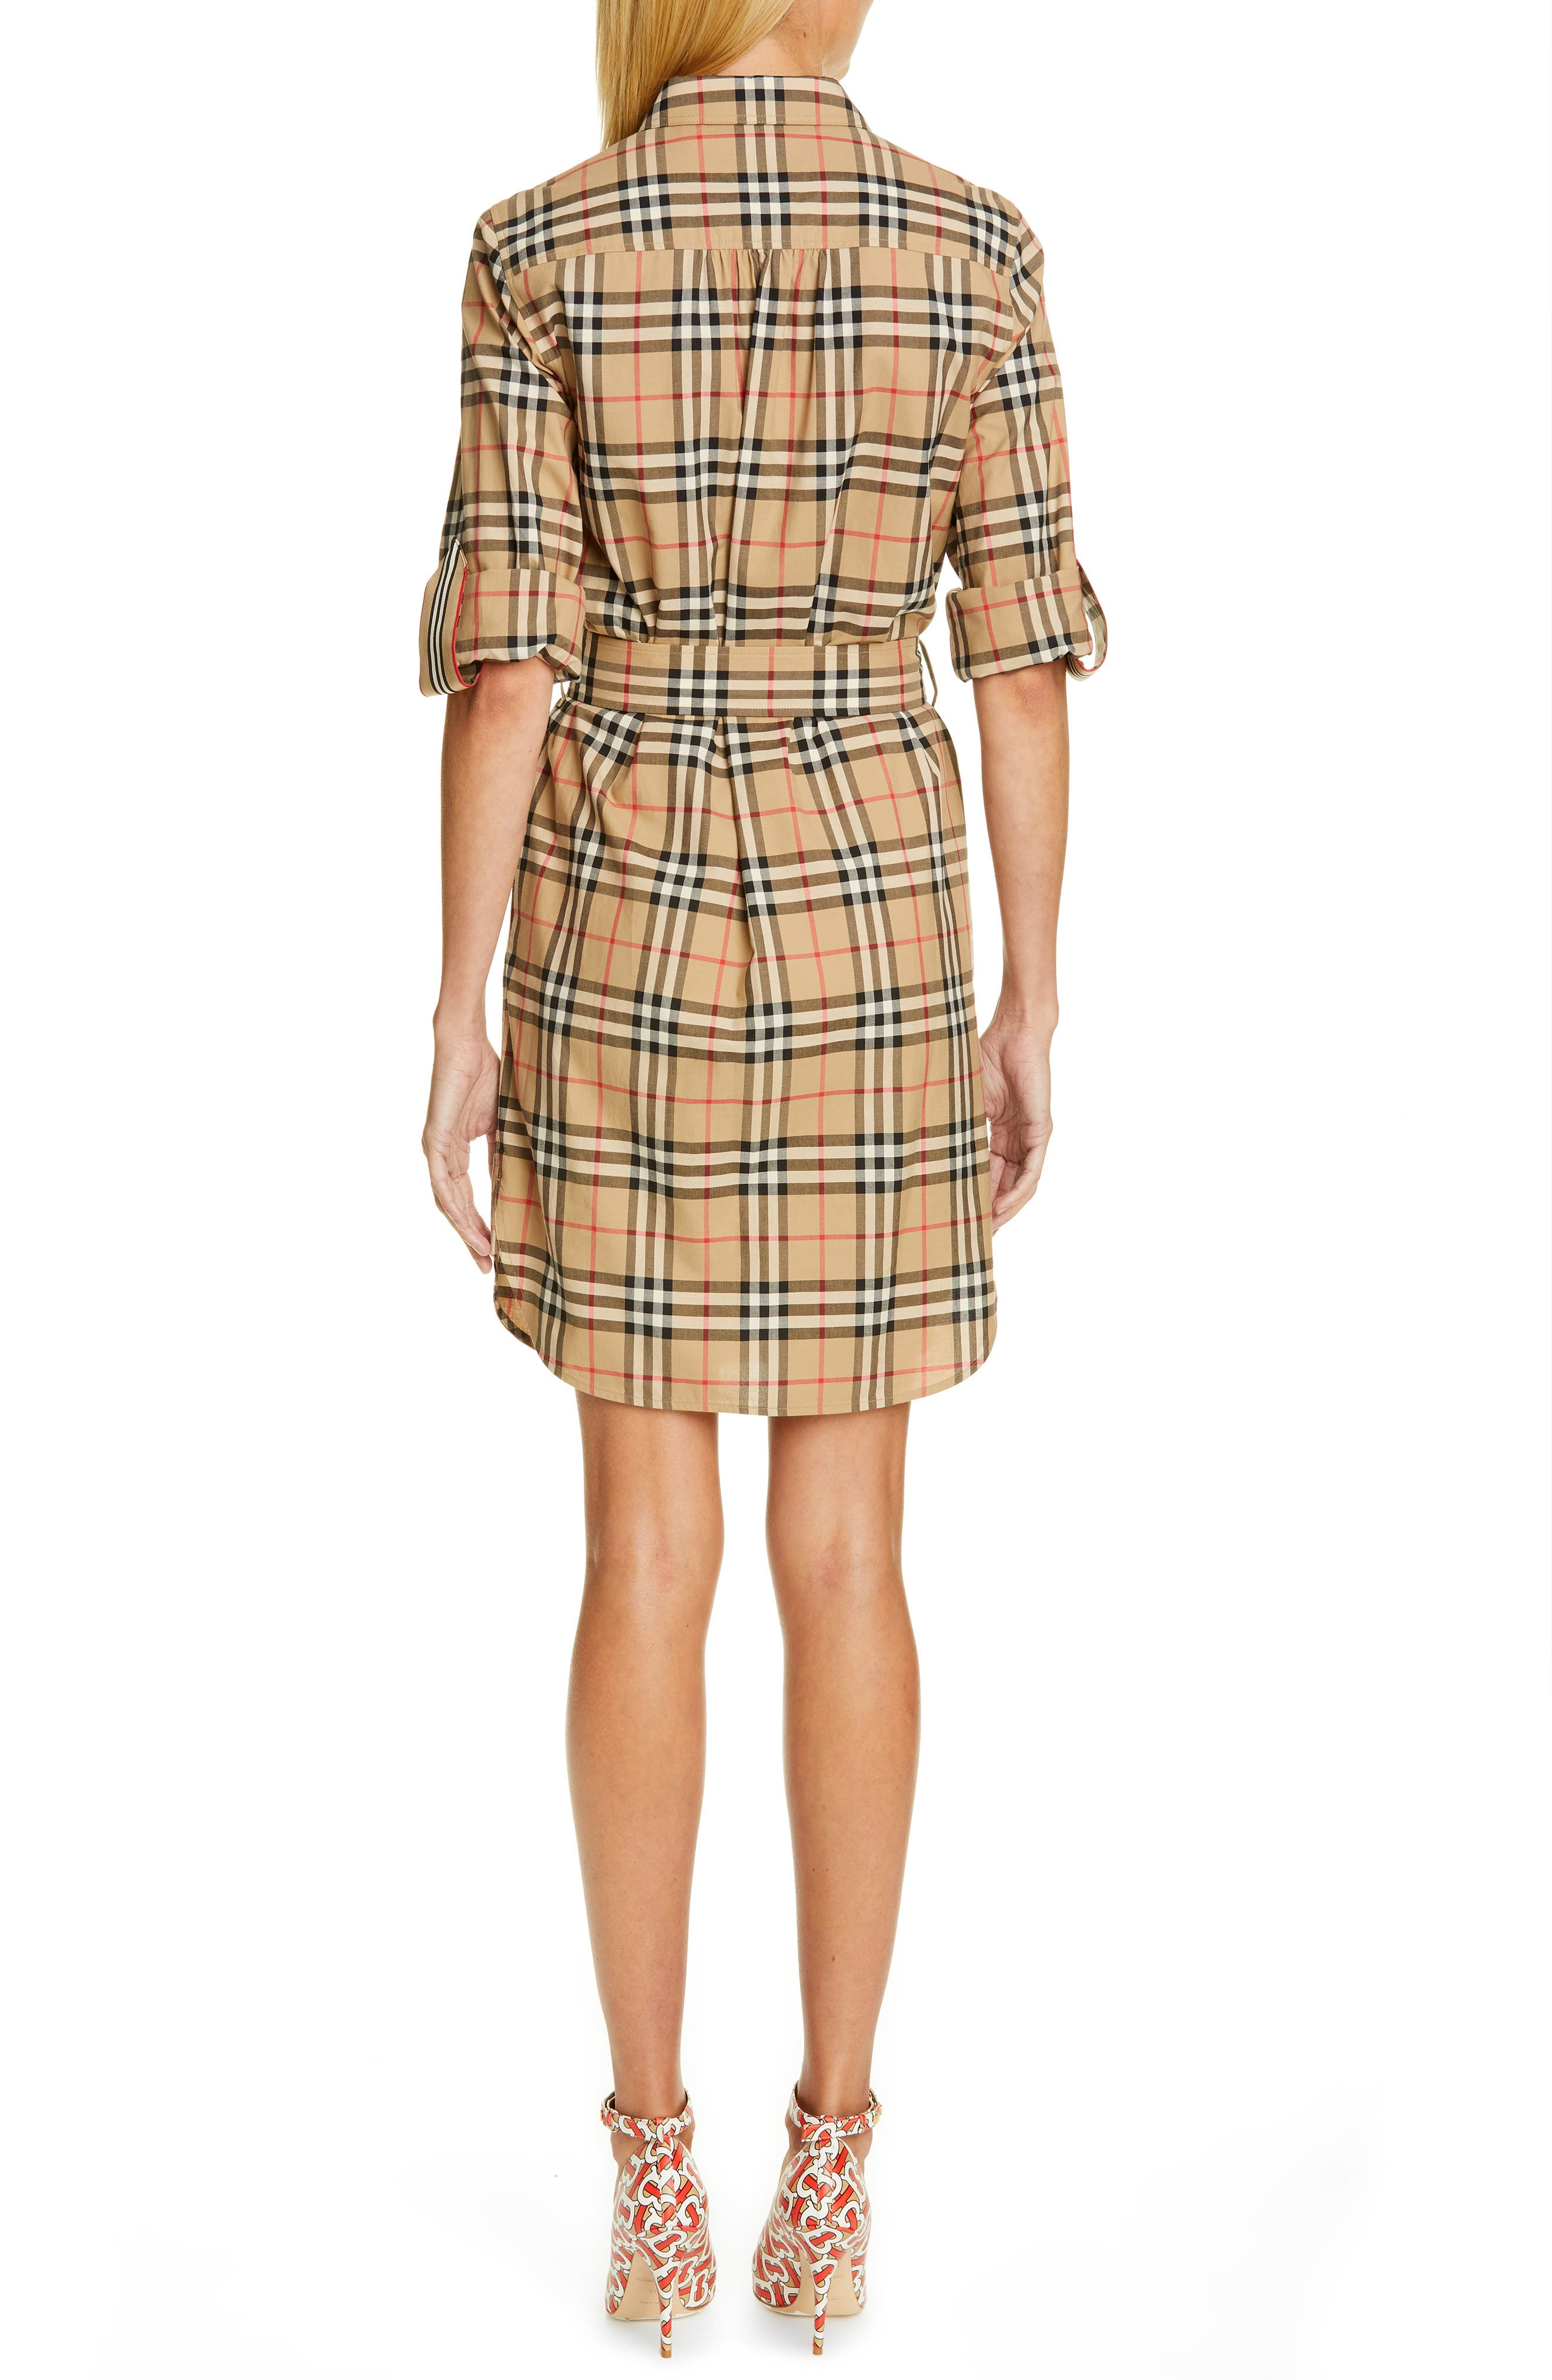 BURBERRY, Giovanna Archive Check Shirtdress, Alternate thumbnail 2, color, ARCHIVE BEIGE IP CHK